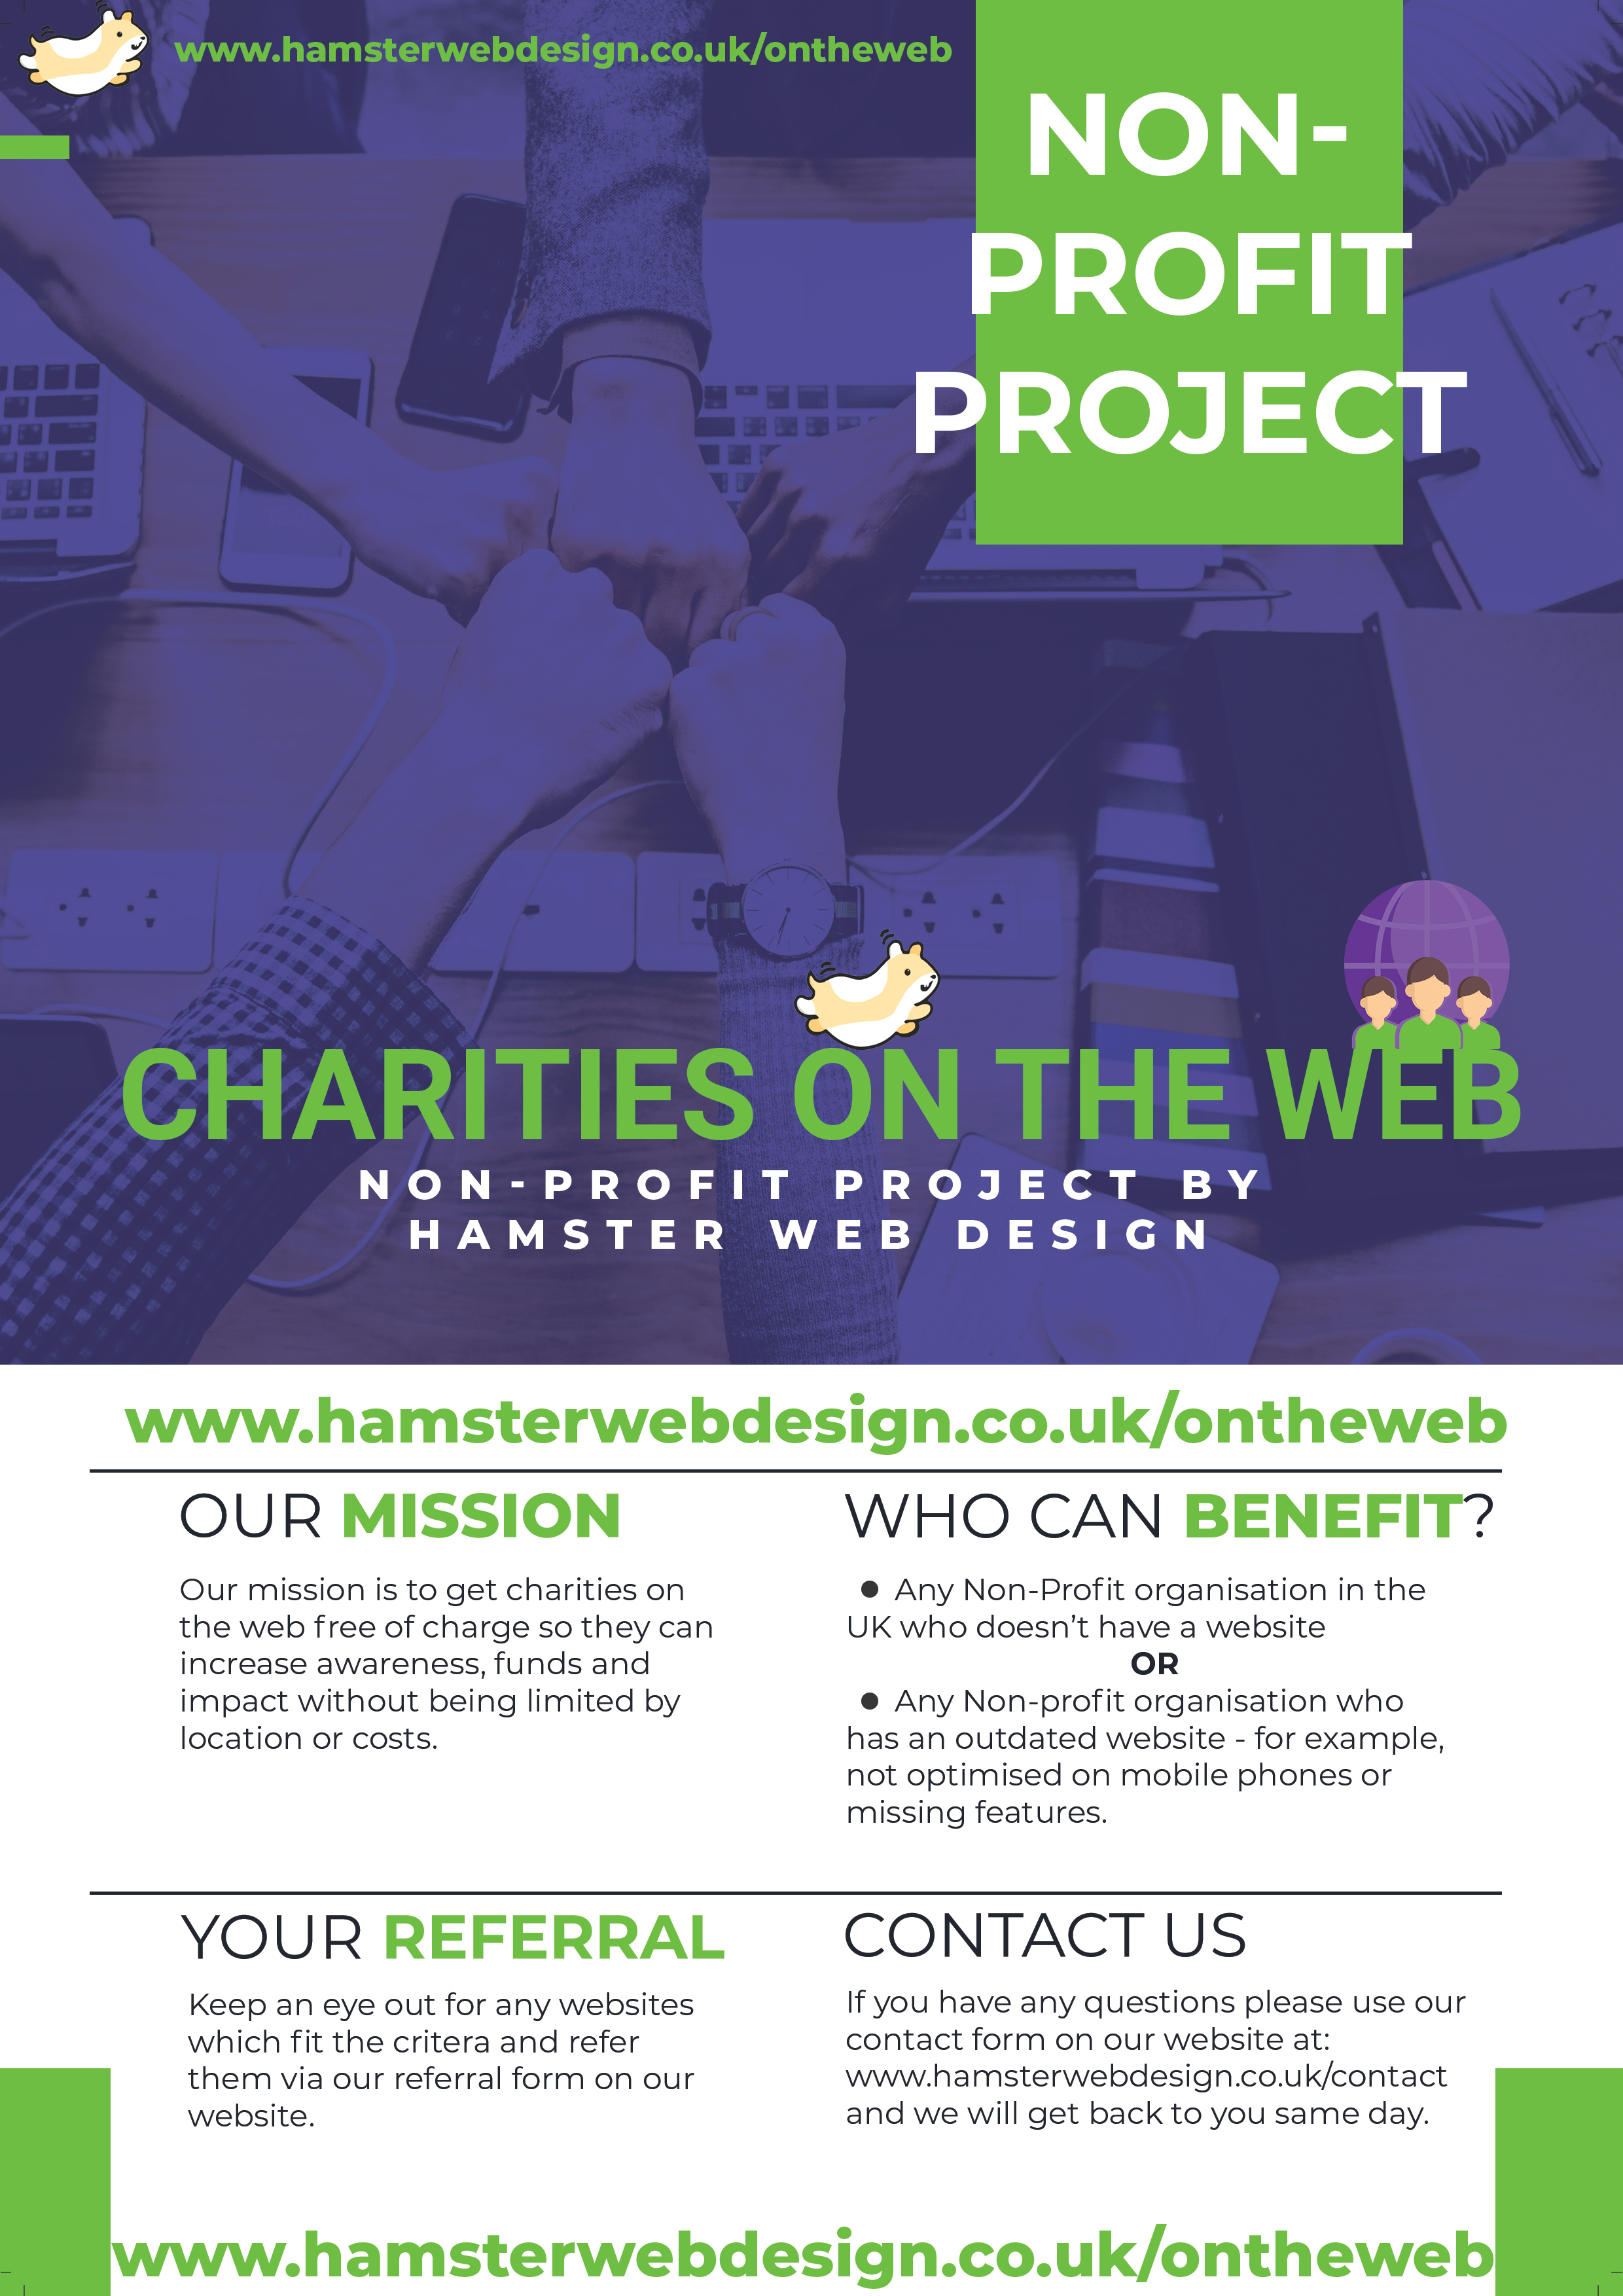 CHARITIES ON THE WEB FLYER.png